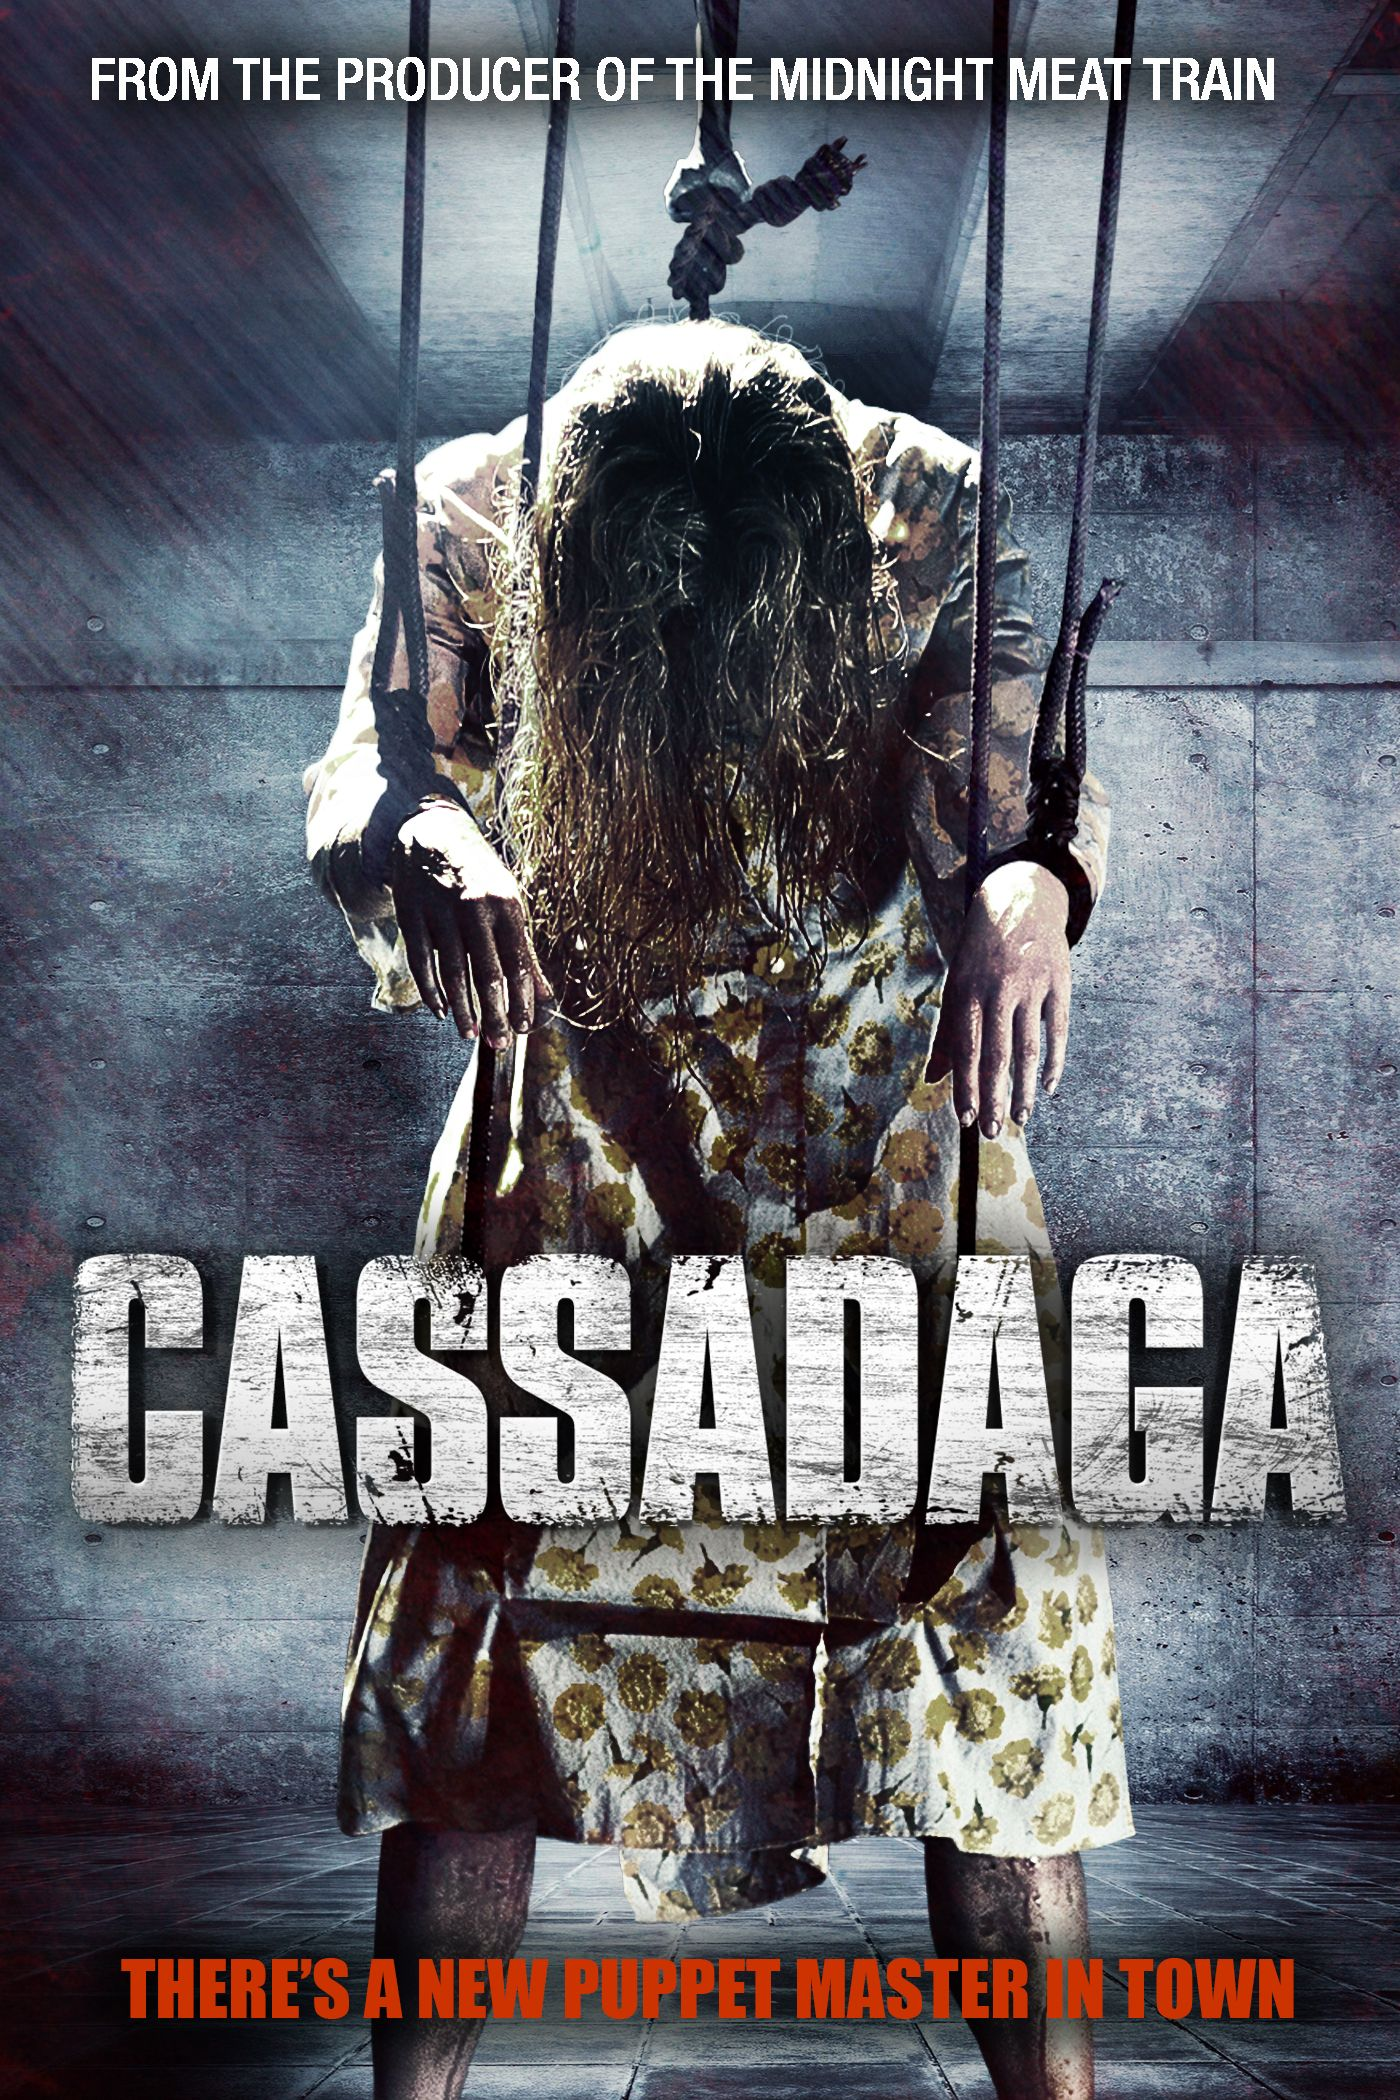 explore halloween movies horror movies and more - Cassadaga Halloween